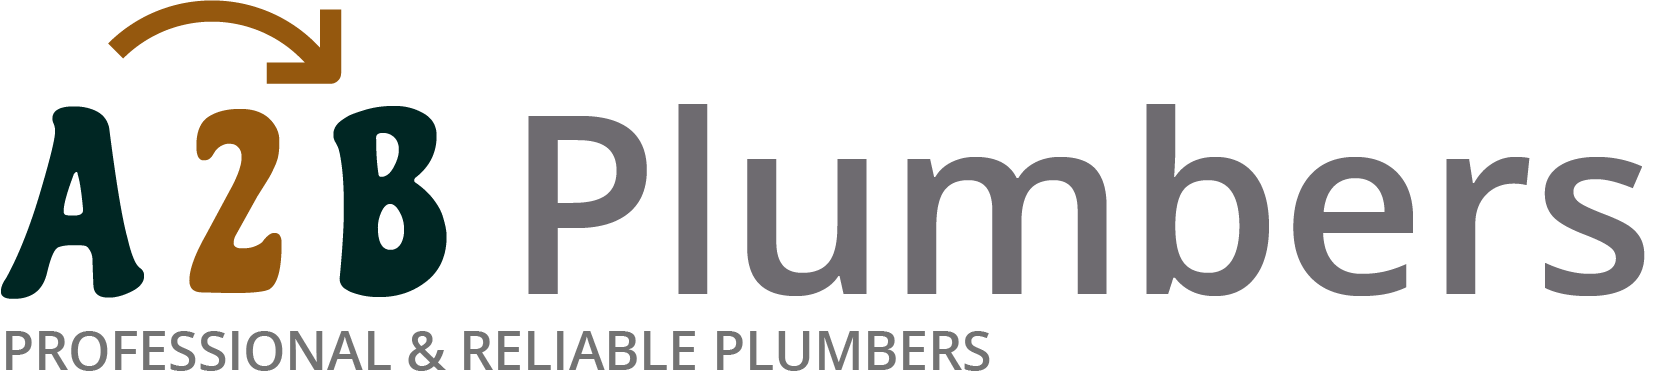 If you need a boiler installed, a radiator repaired or a leaking tap fixed, call us now - we provide services for properties in Hurstpierpoint and the local area.